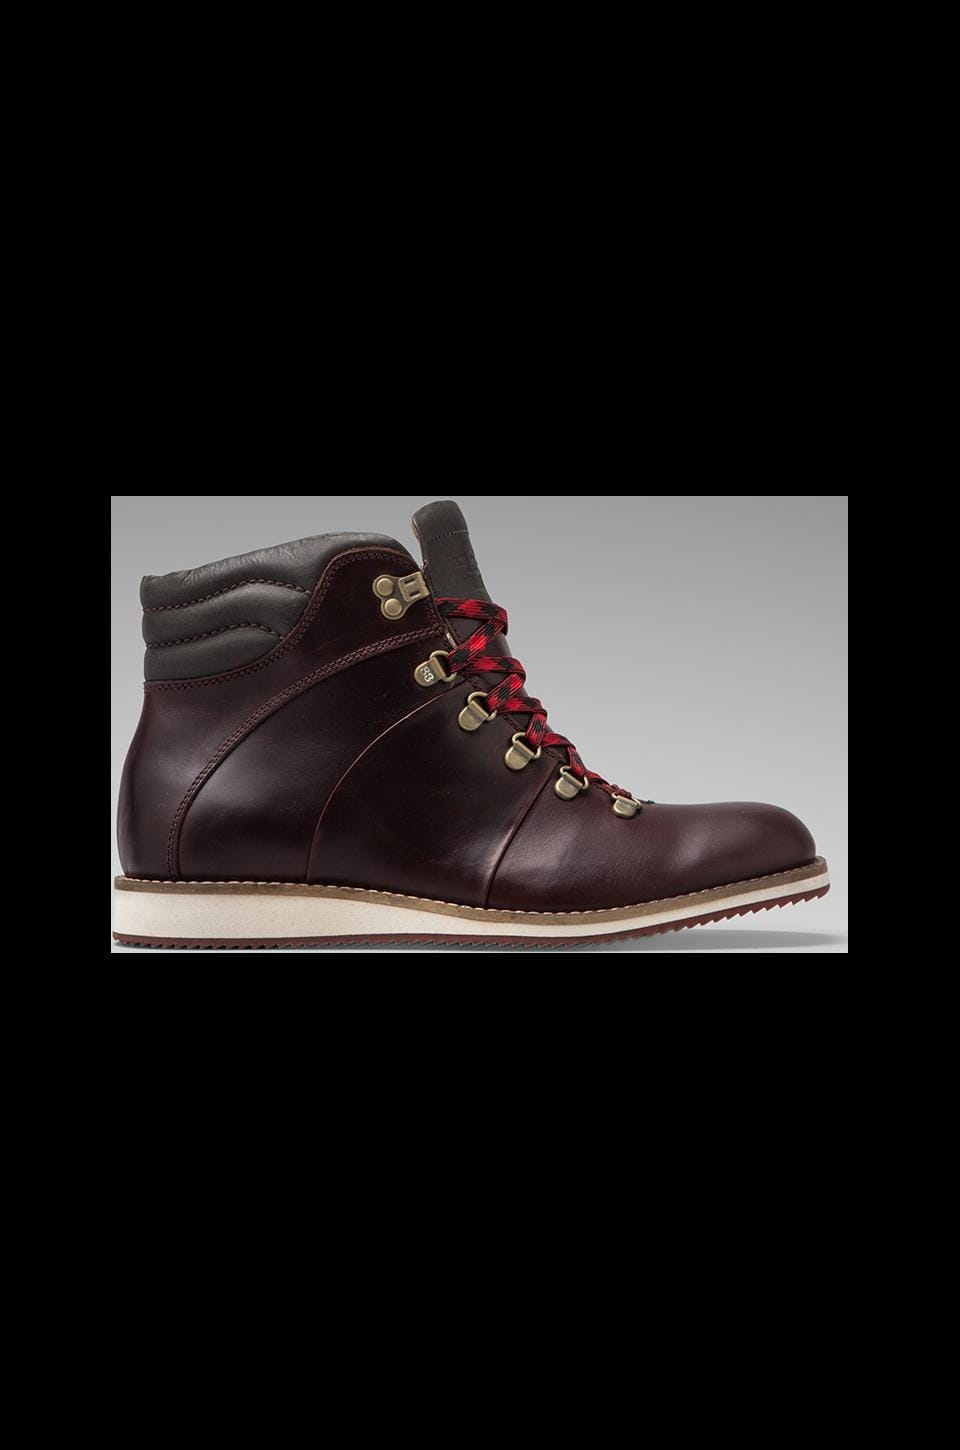 Wolverine 1883 Bertel Boot in Burgundy